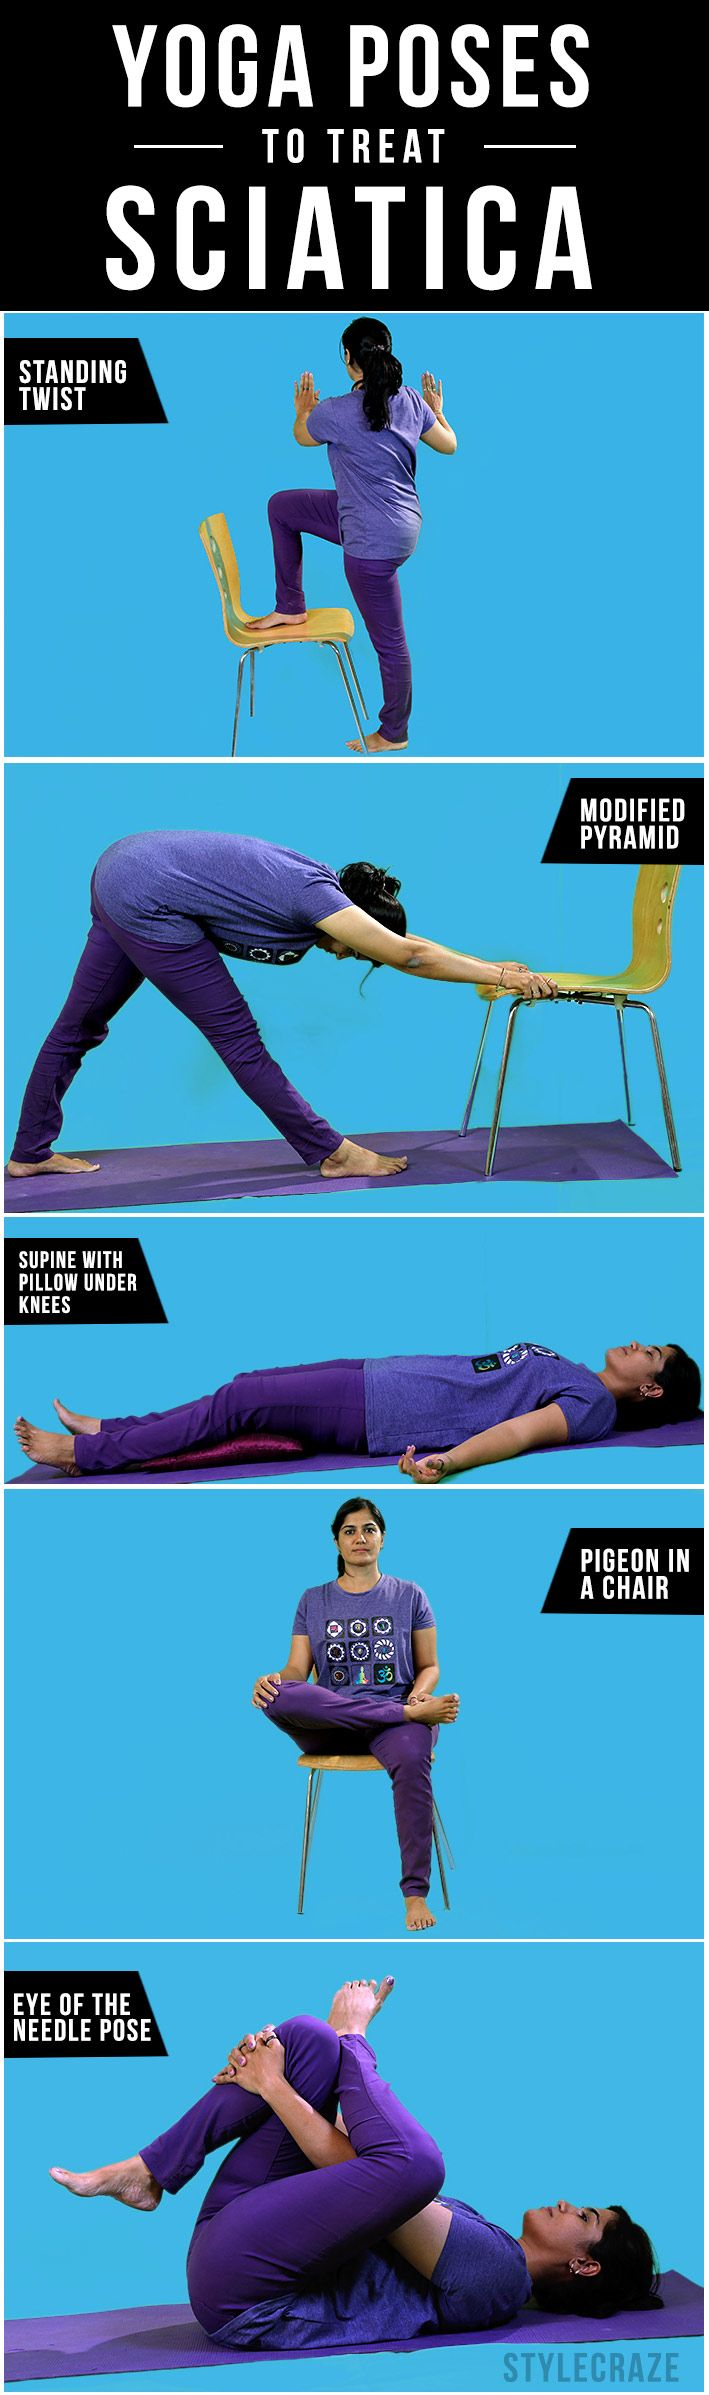 8 Effective Yoga Poses To Treat Sciatica